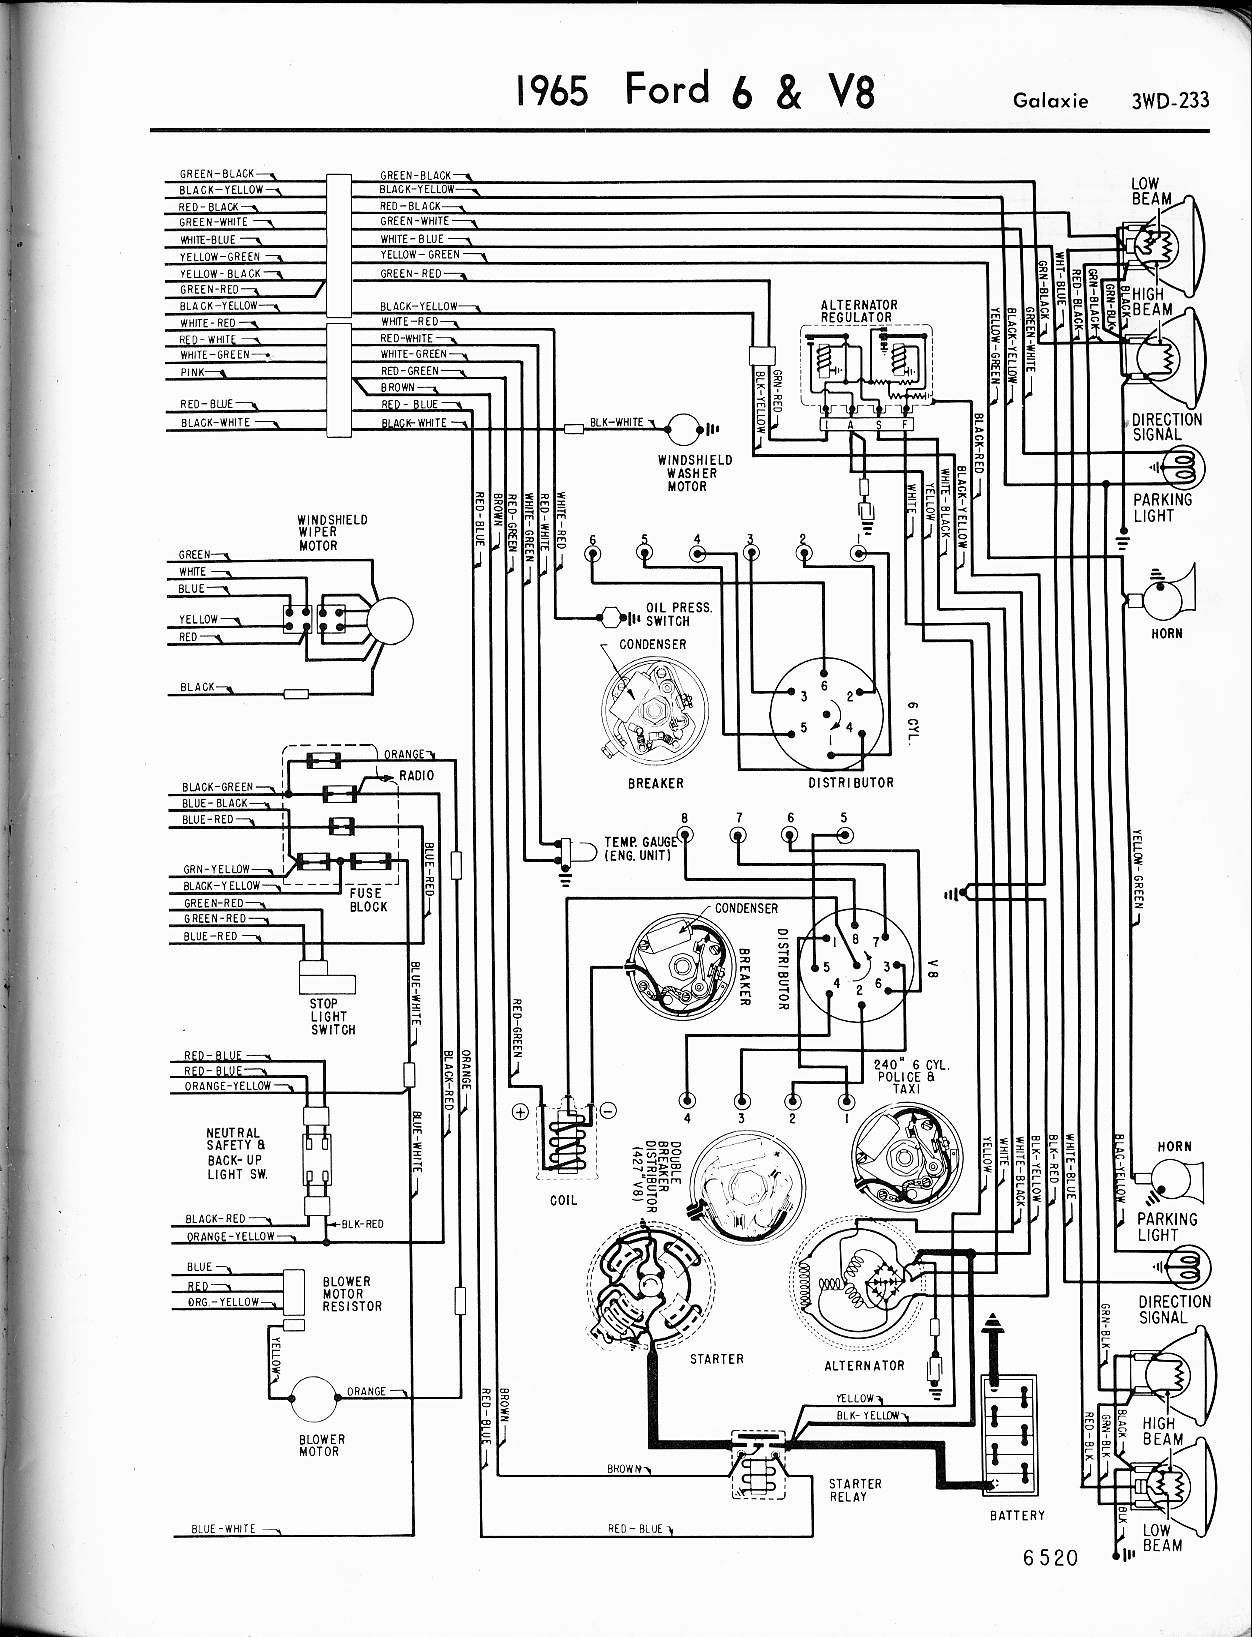 ford 4 6 v8 engine diagram 1965 ford galaxie wiring